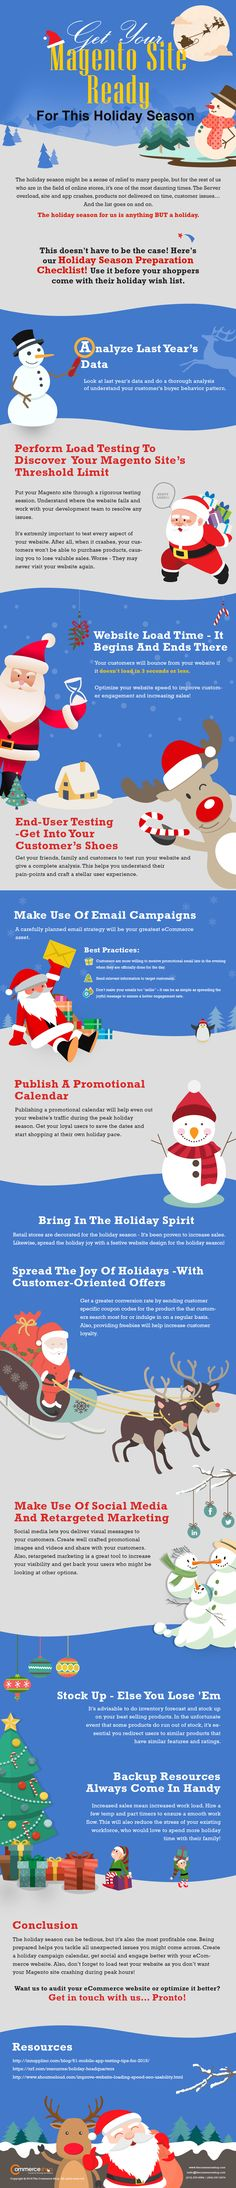 125 best vc other infographics images on pinterest info graphics get your magento site ready for this holiday season fandeluxe Gallery